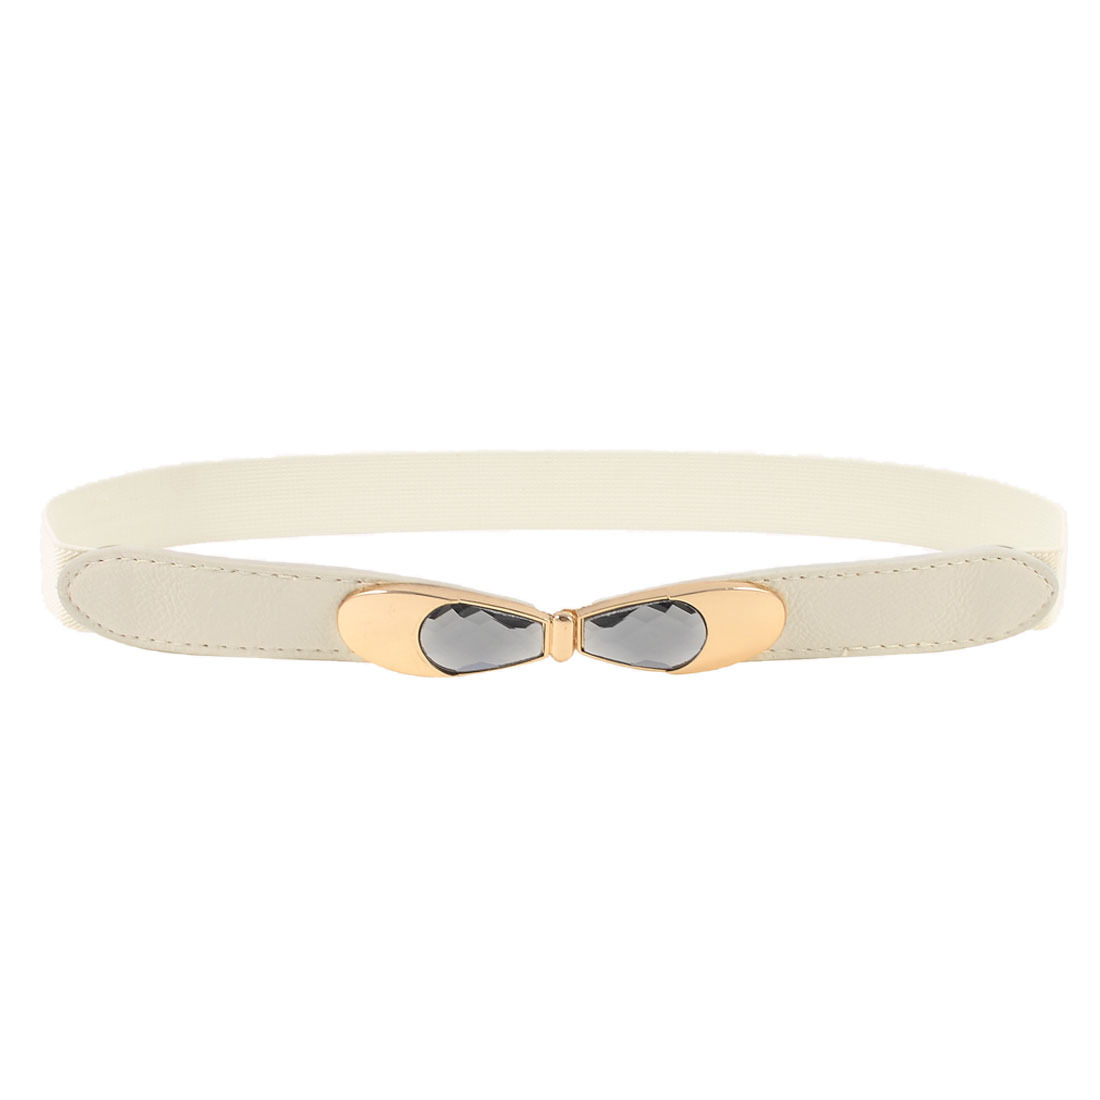 Woman White Litchi Faux Leather Buckle Part 2.5cm Wide Stretchy Band Cinch Belt